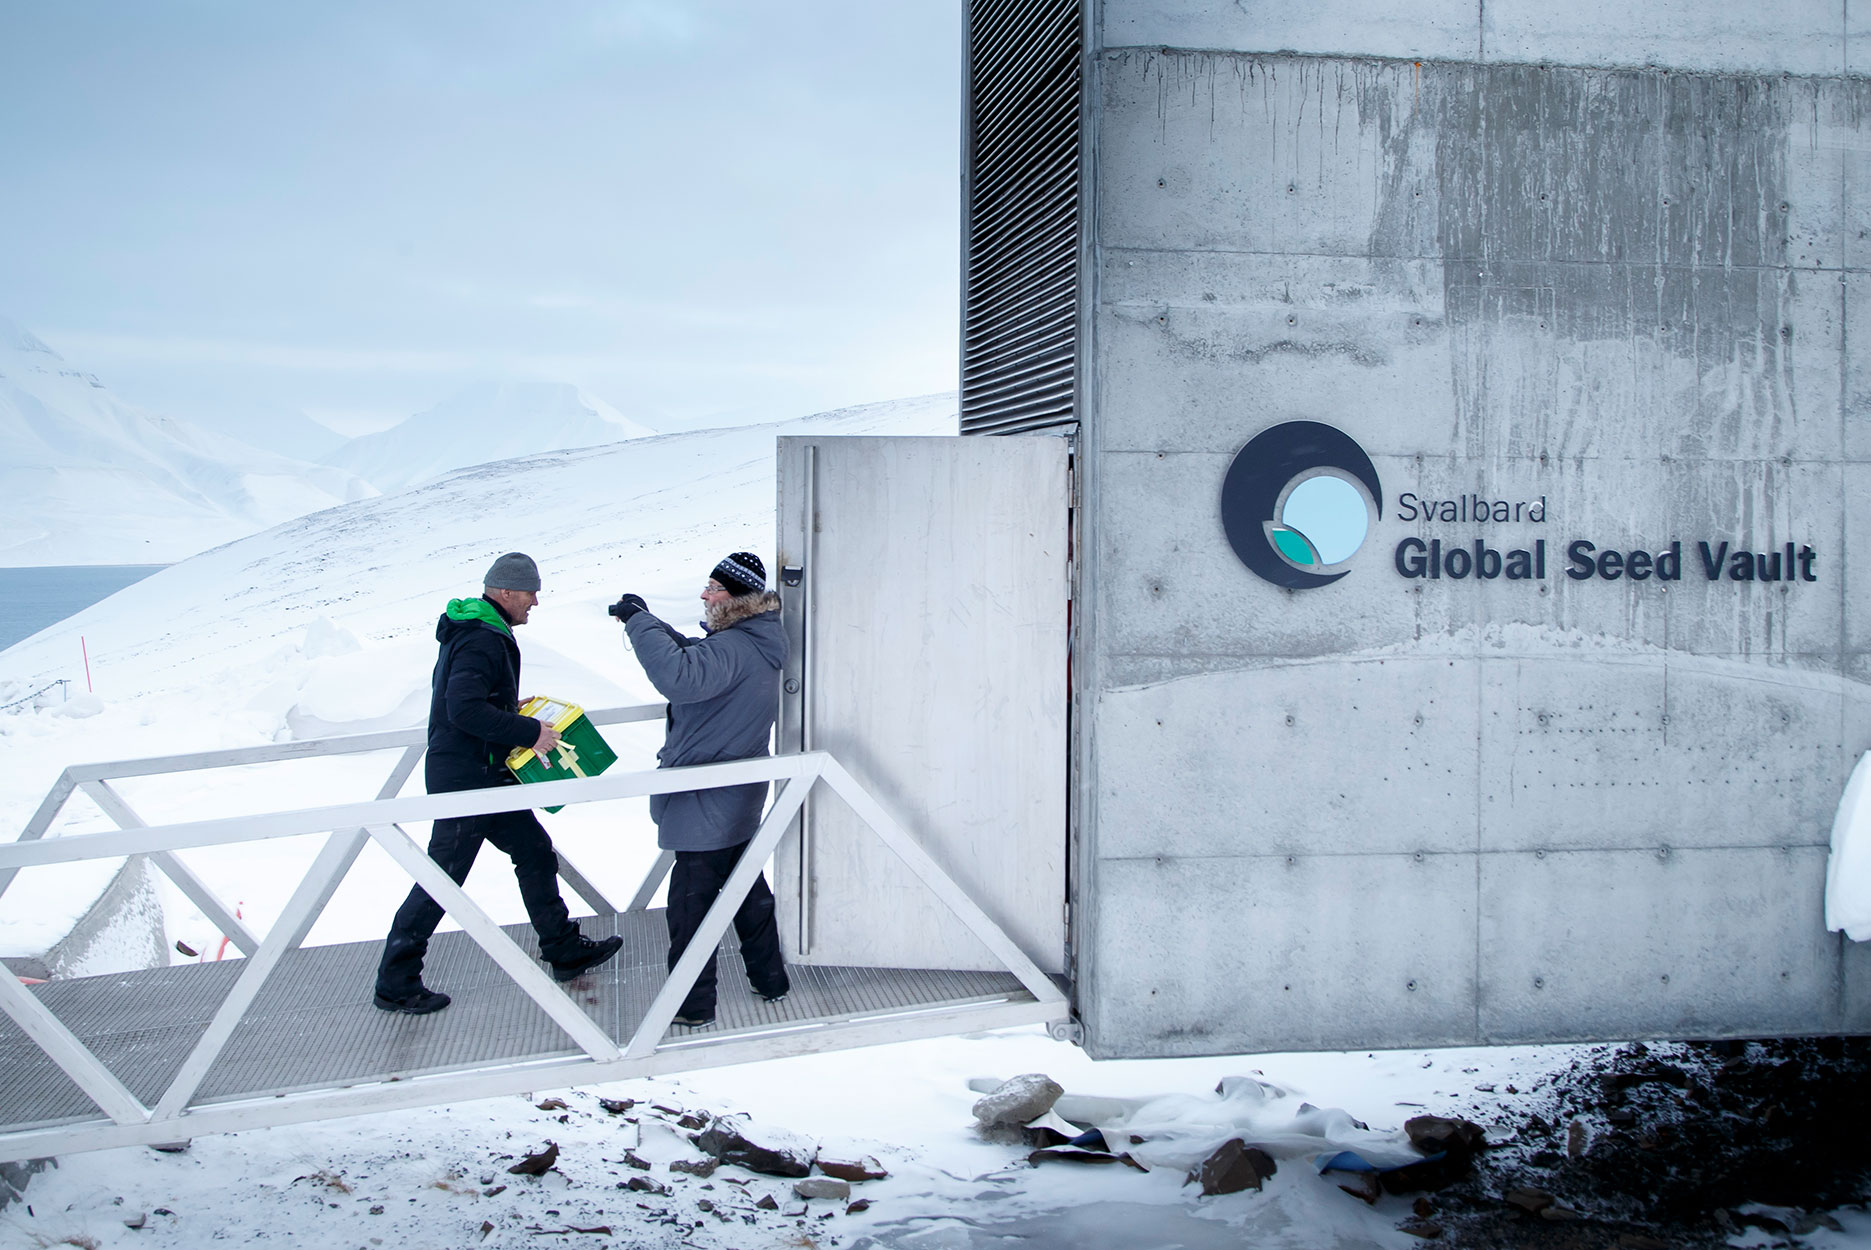 Workers deliver seeds into the vault